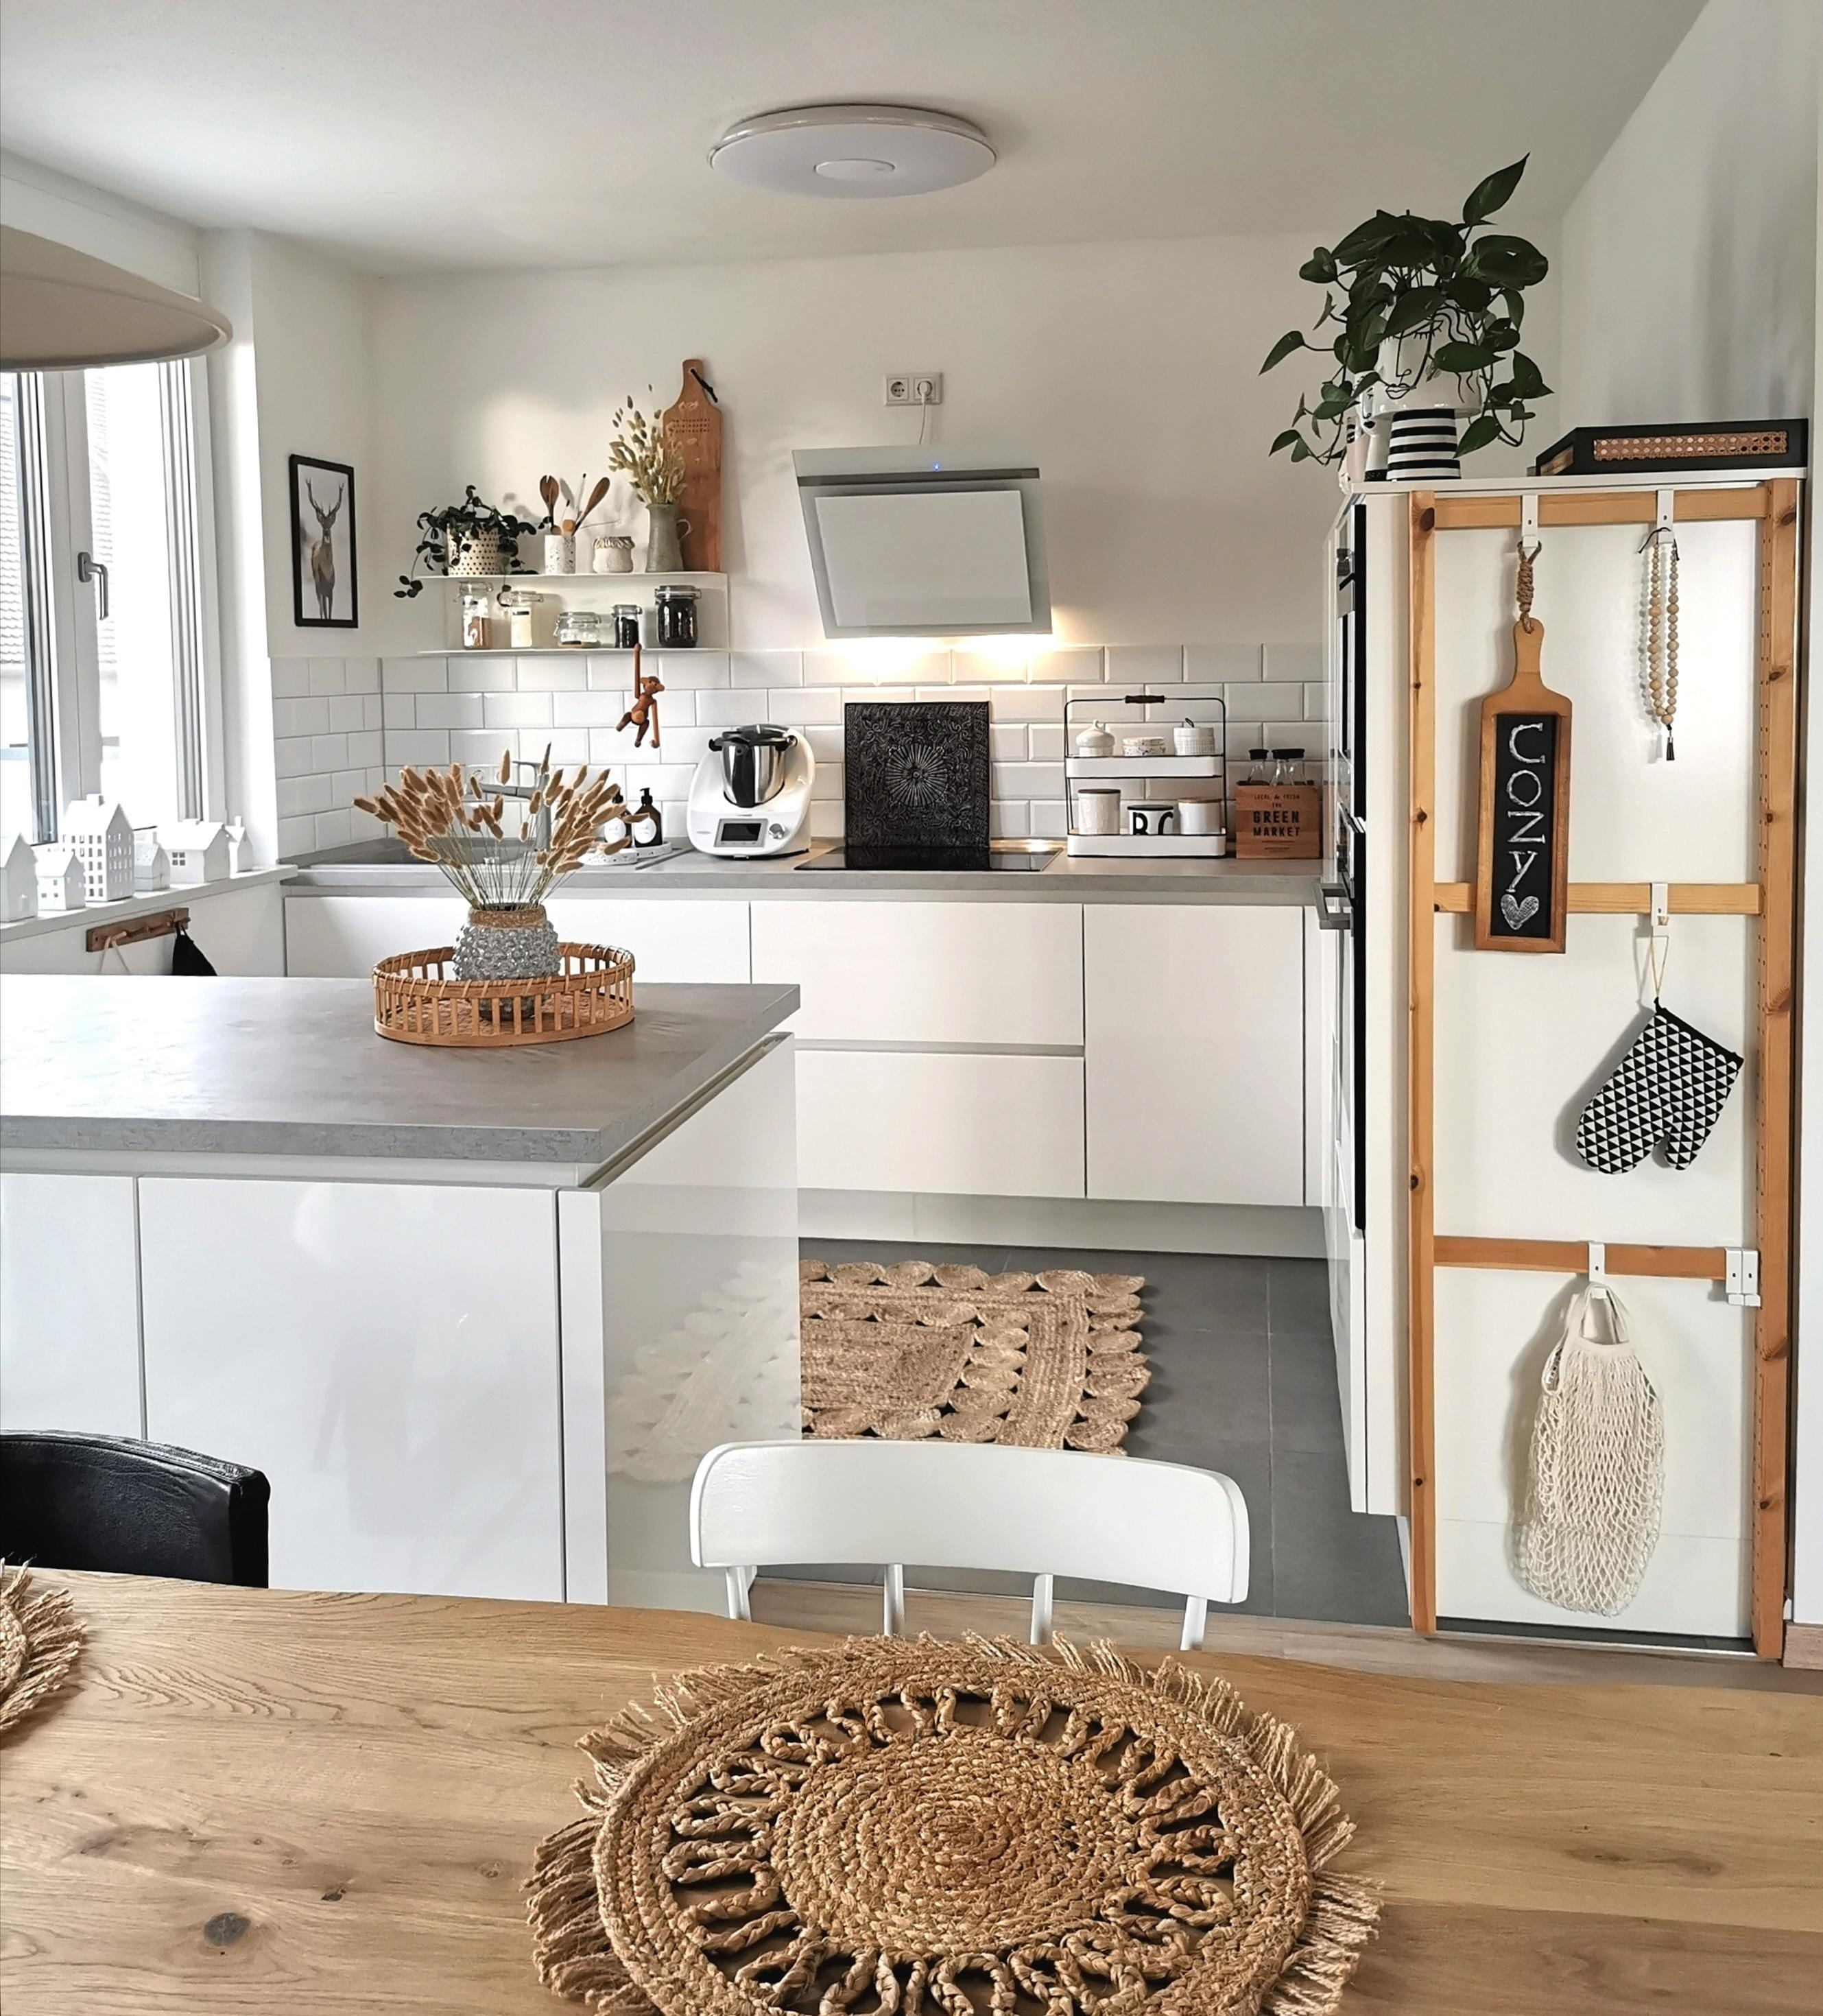 Boho feeling in der kueche  kuecheninspiration whitekitchen kitchenview boholove  8e19c4a9 9569 4d4f b2fb 23e01fcc8c44